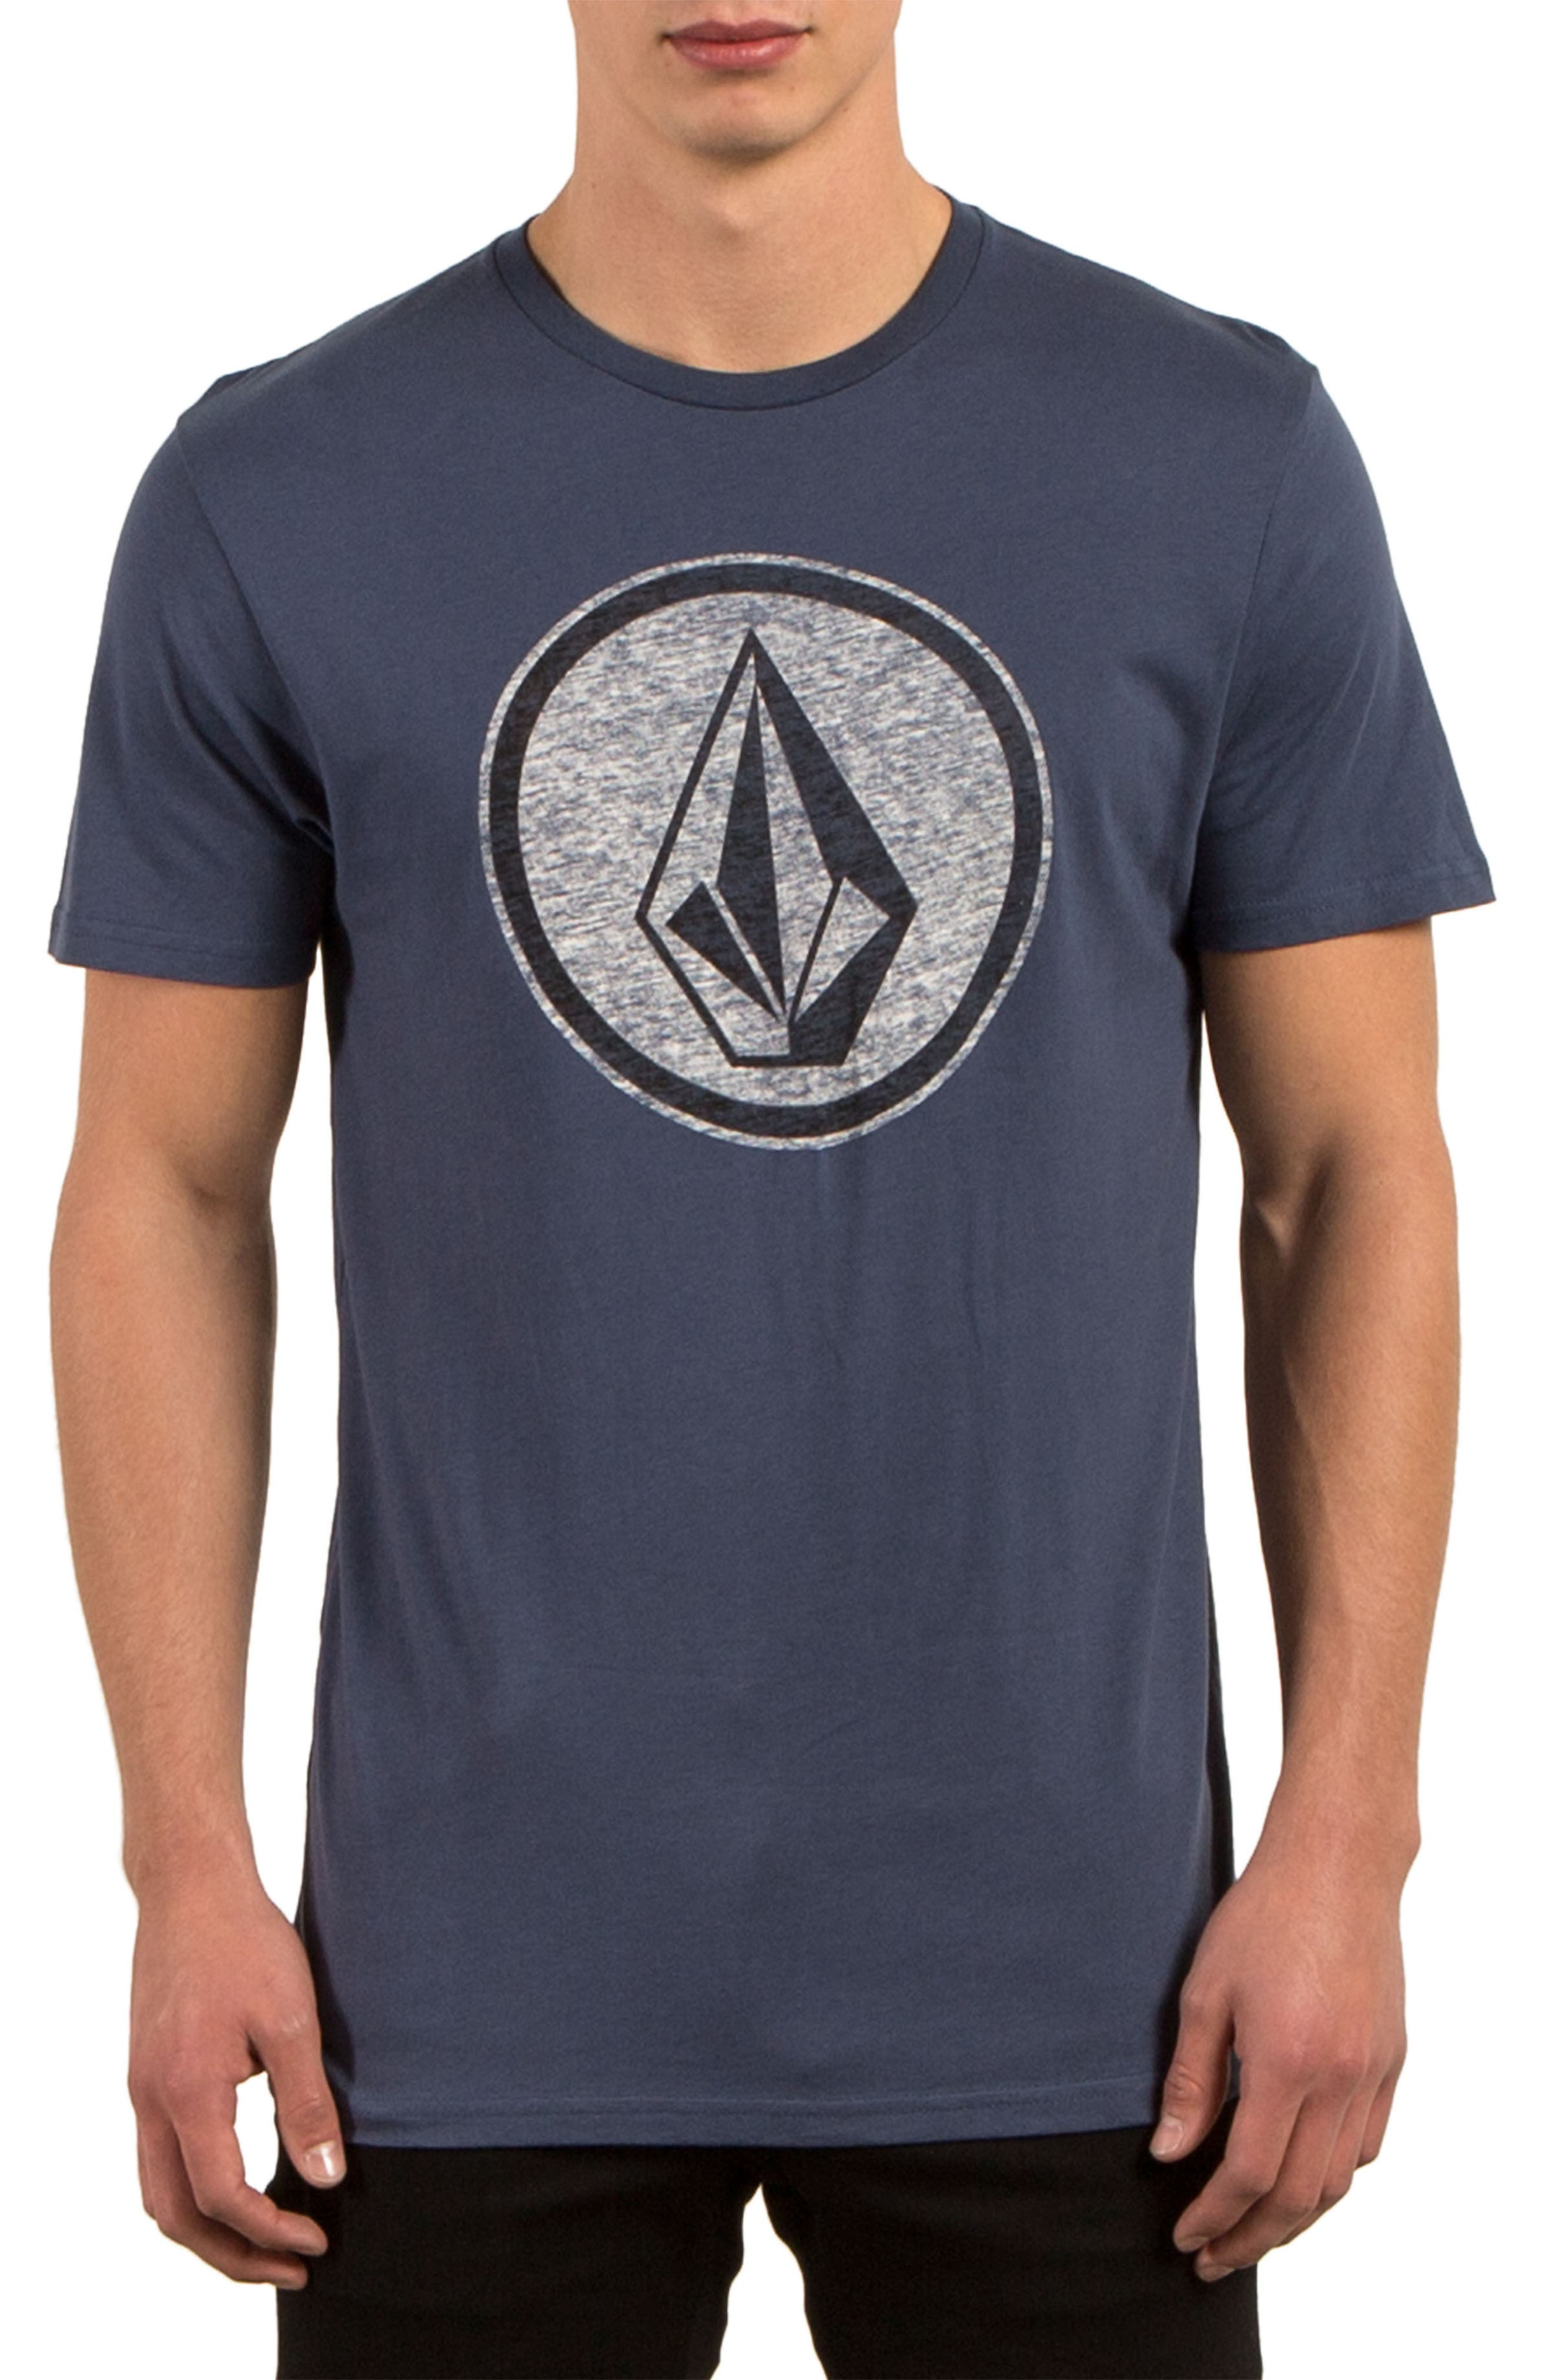 Alternate Image 1 Selected - Volcom Classic Stone Graphic T-Shirt